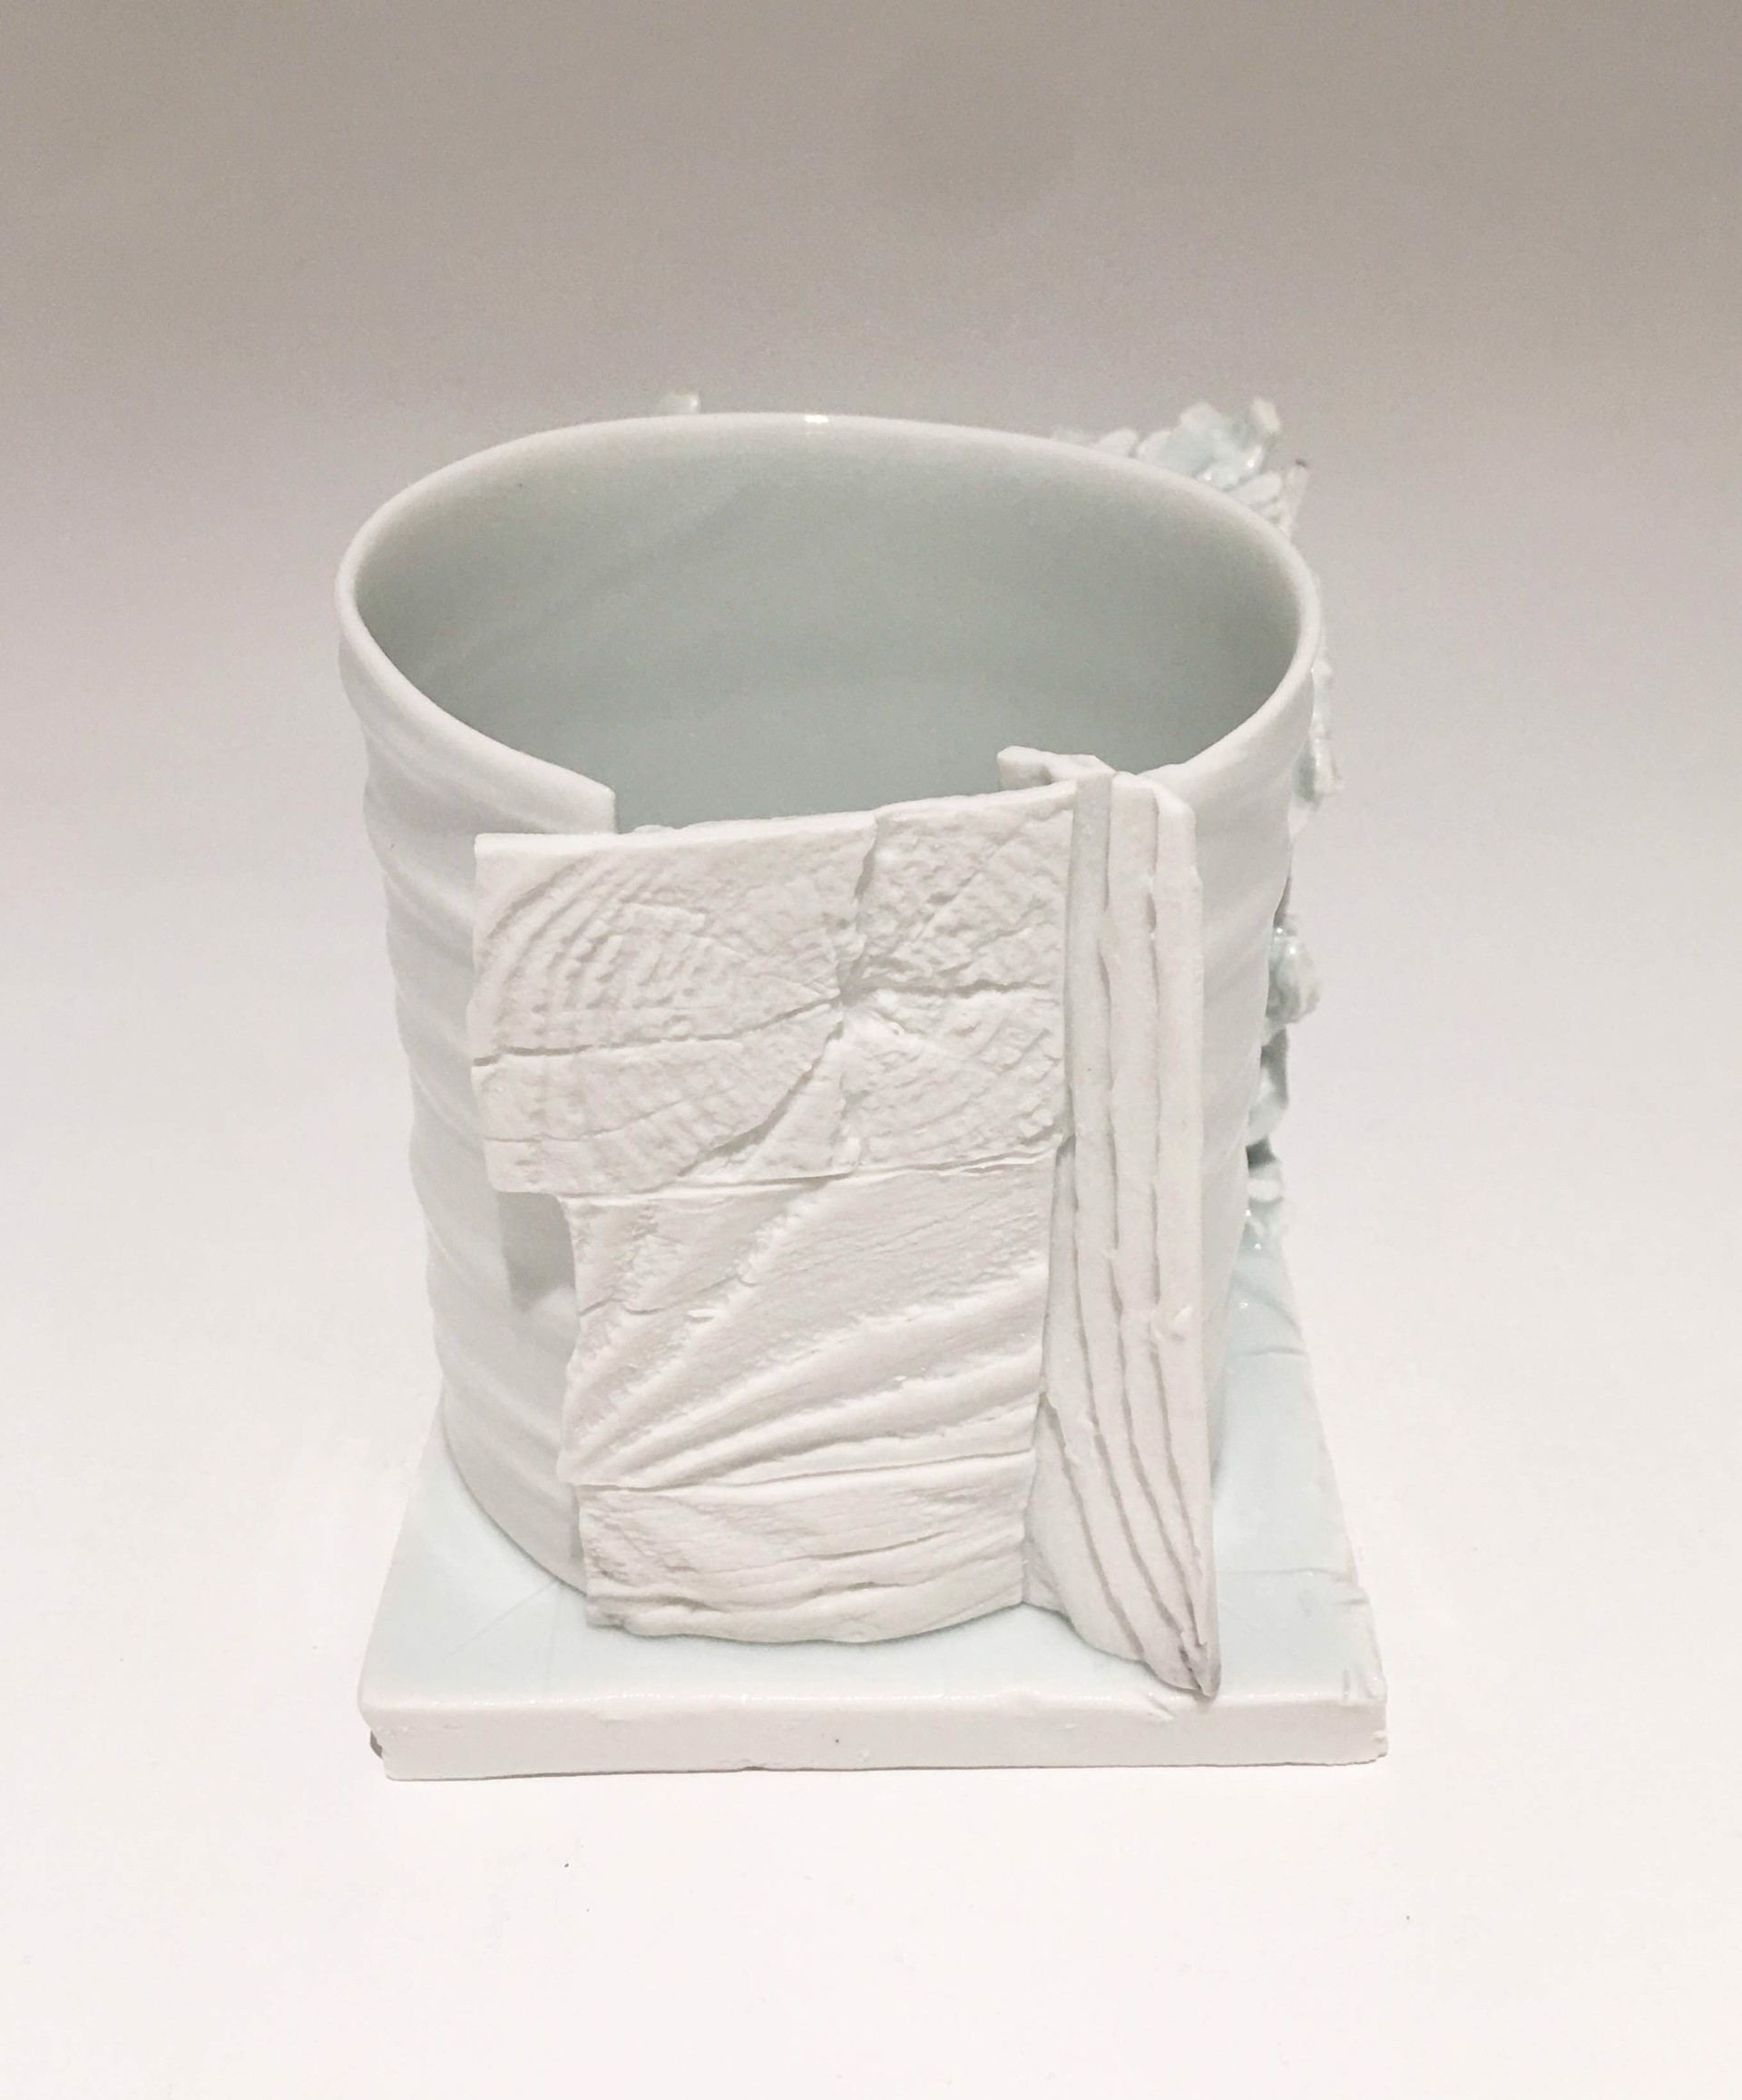 Cup on Stand 3 by Bryan Hopkins